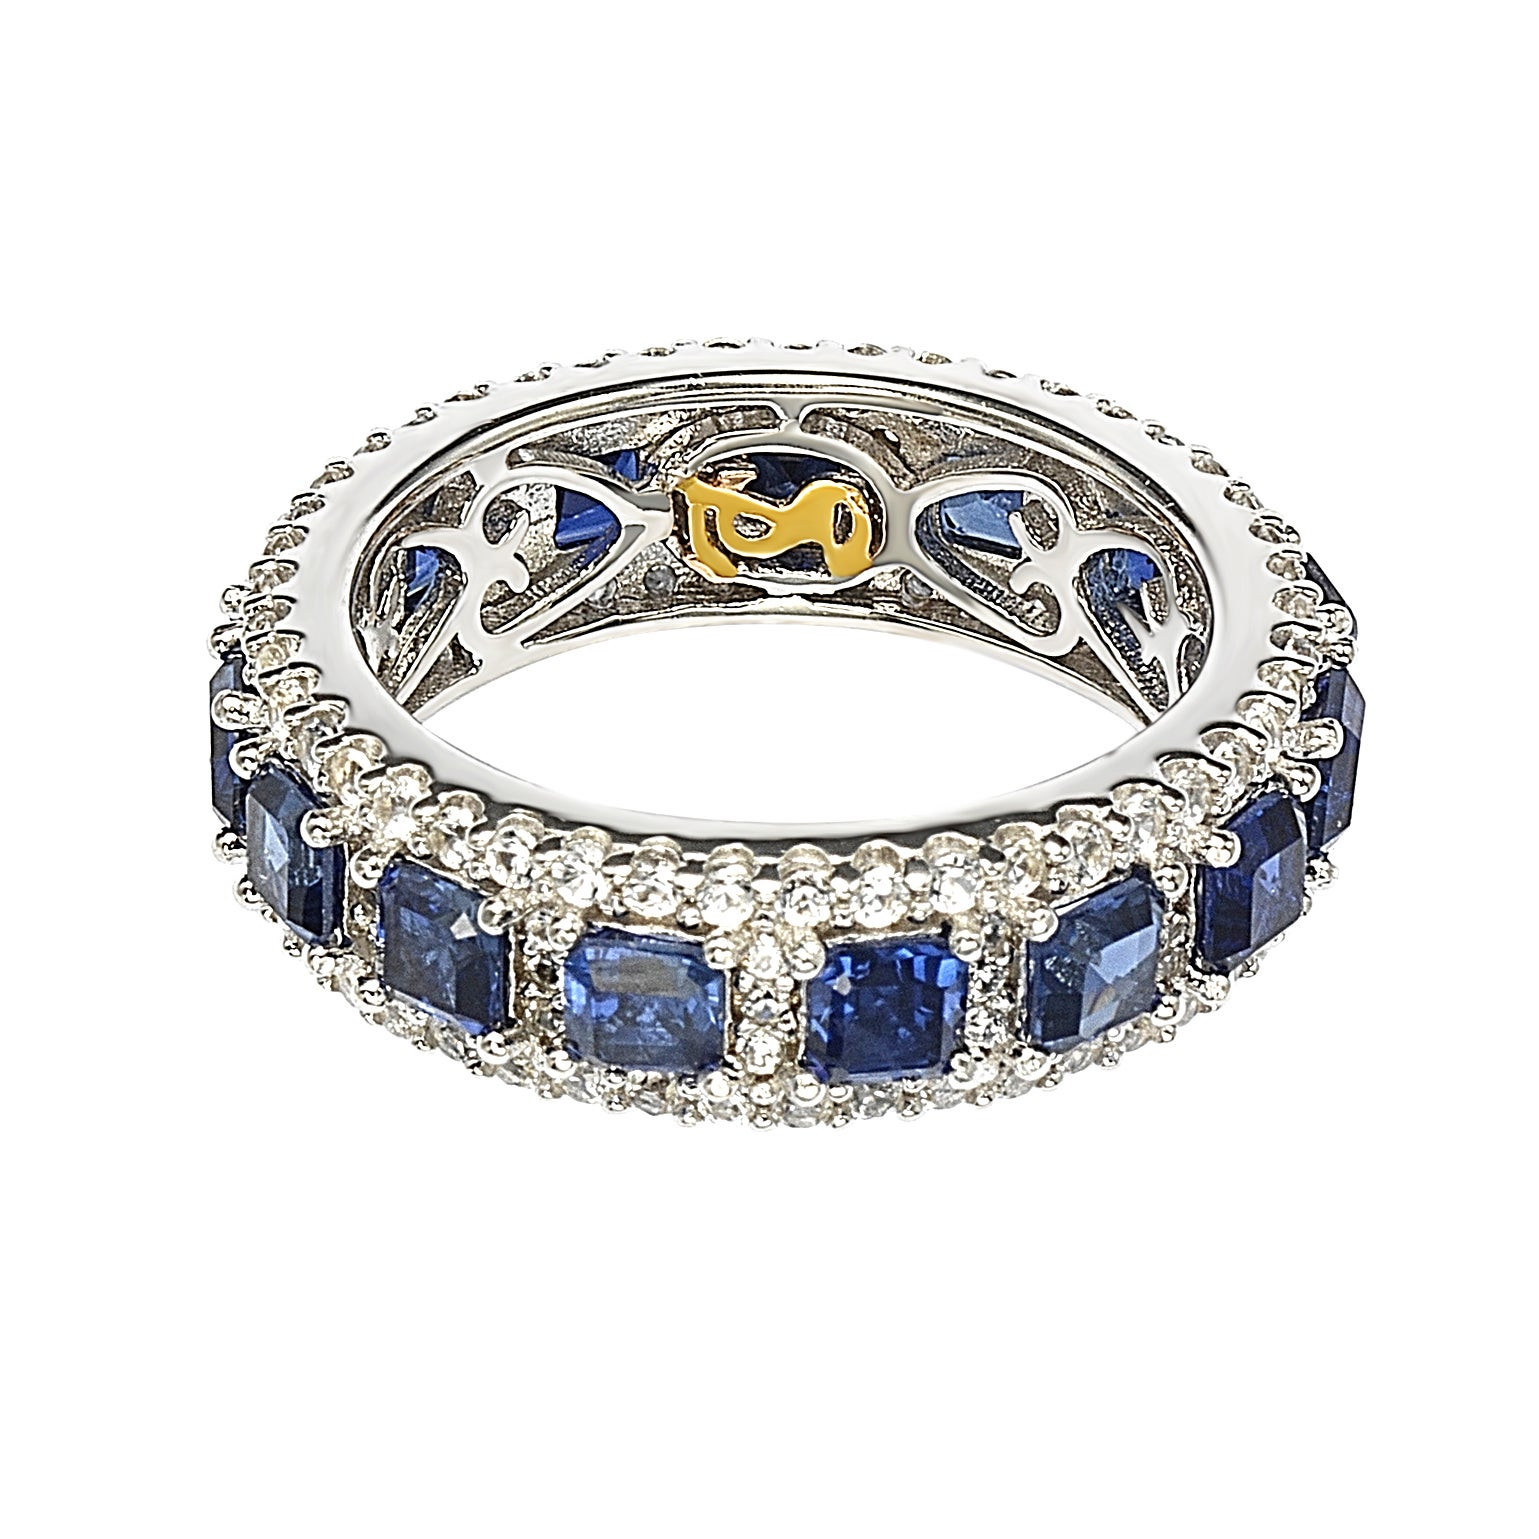 dp bands blue eternity band silver amazon sapphire com carats to ring jewelry sterling sizes created